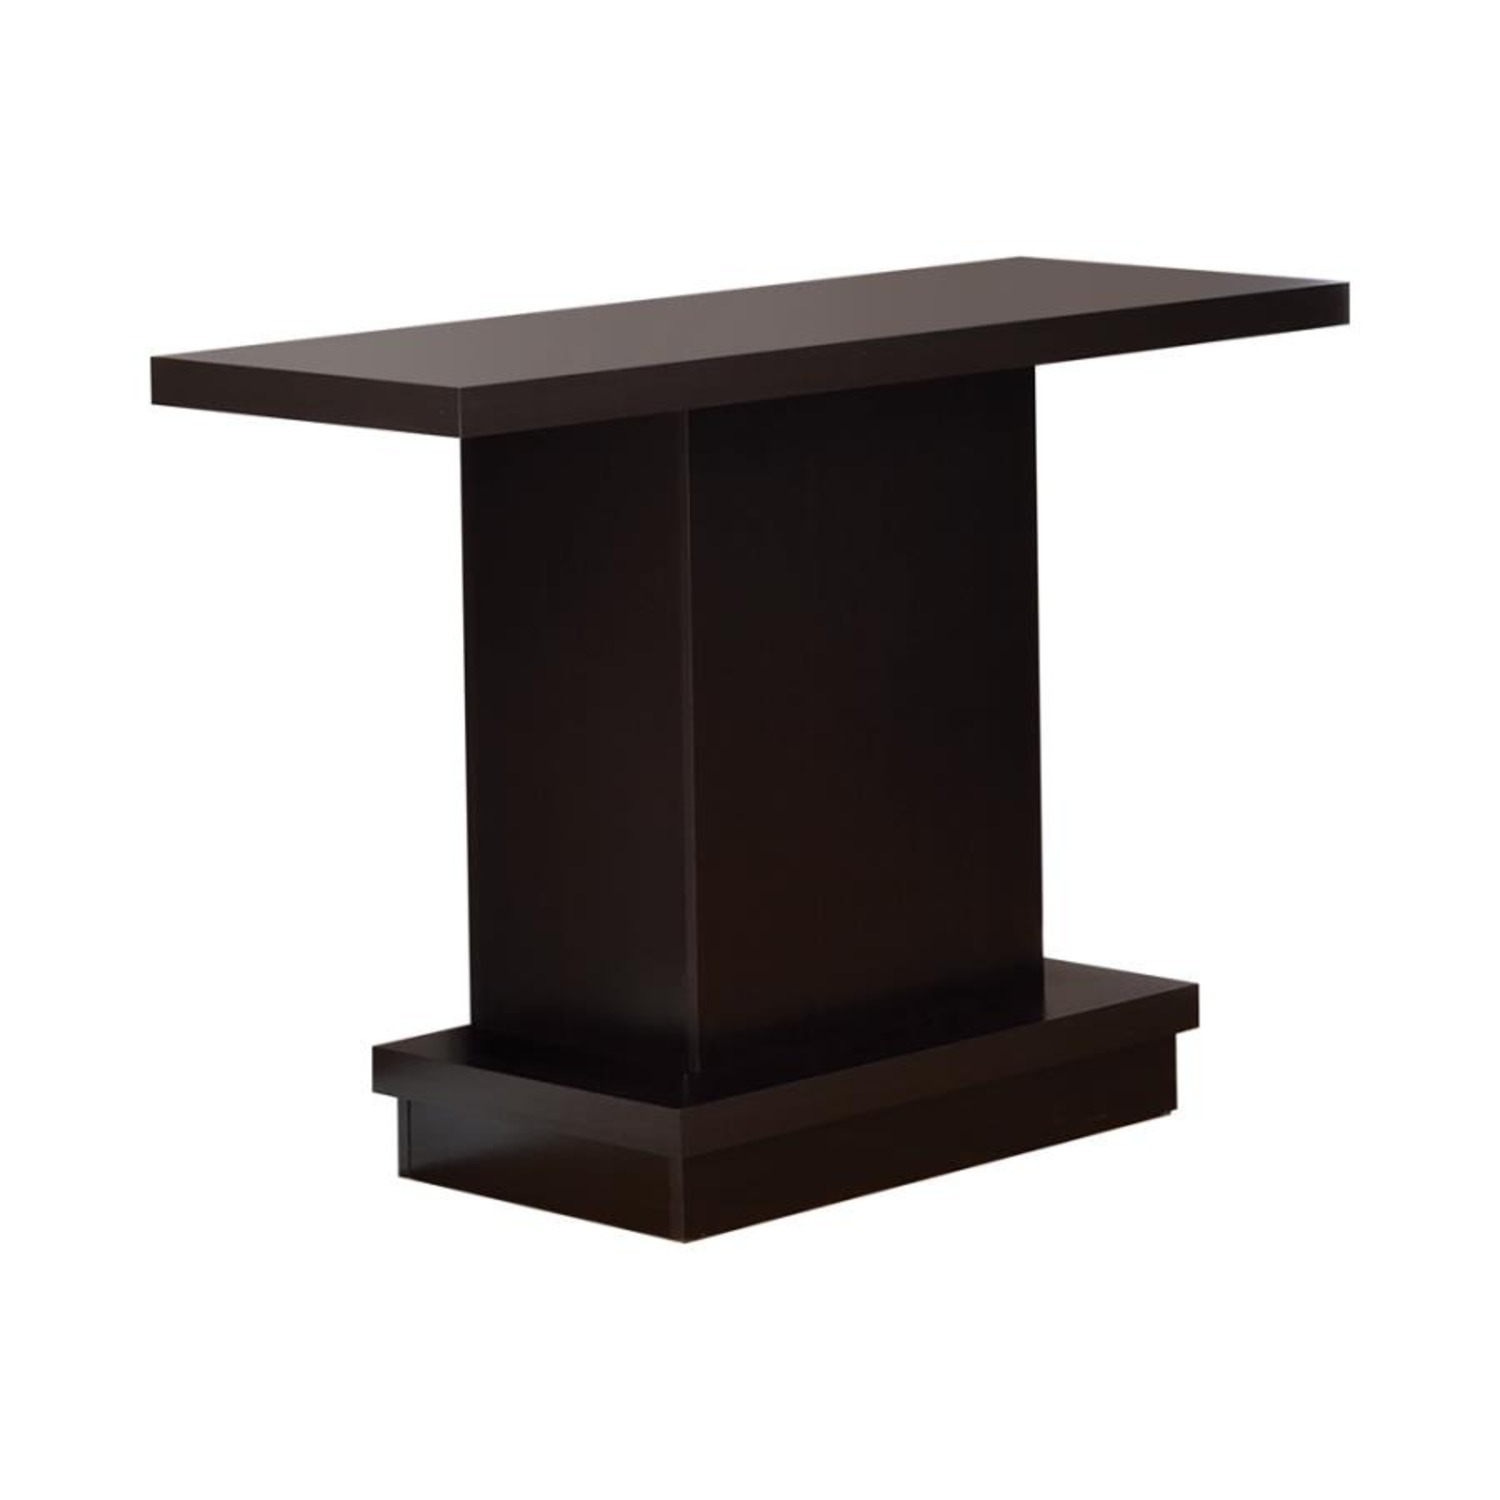 Pedestal-Style Sofa Table In Ric Cappuccino Finish - image-0